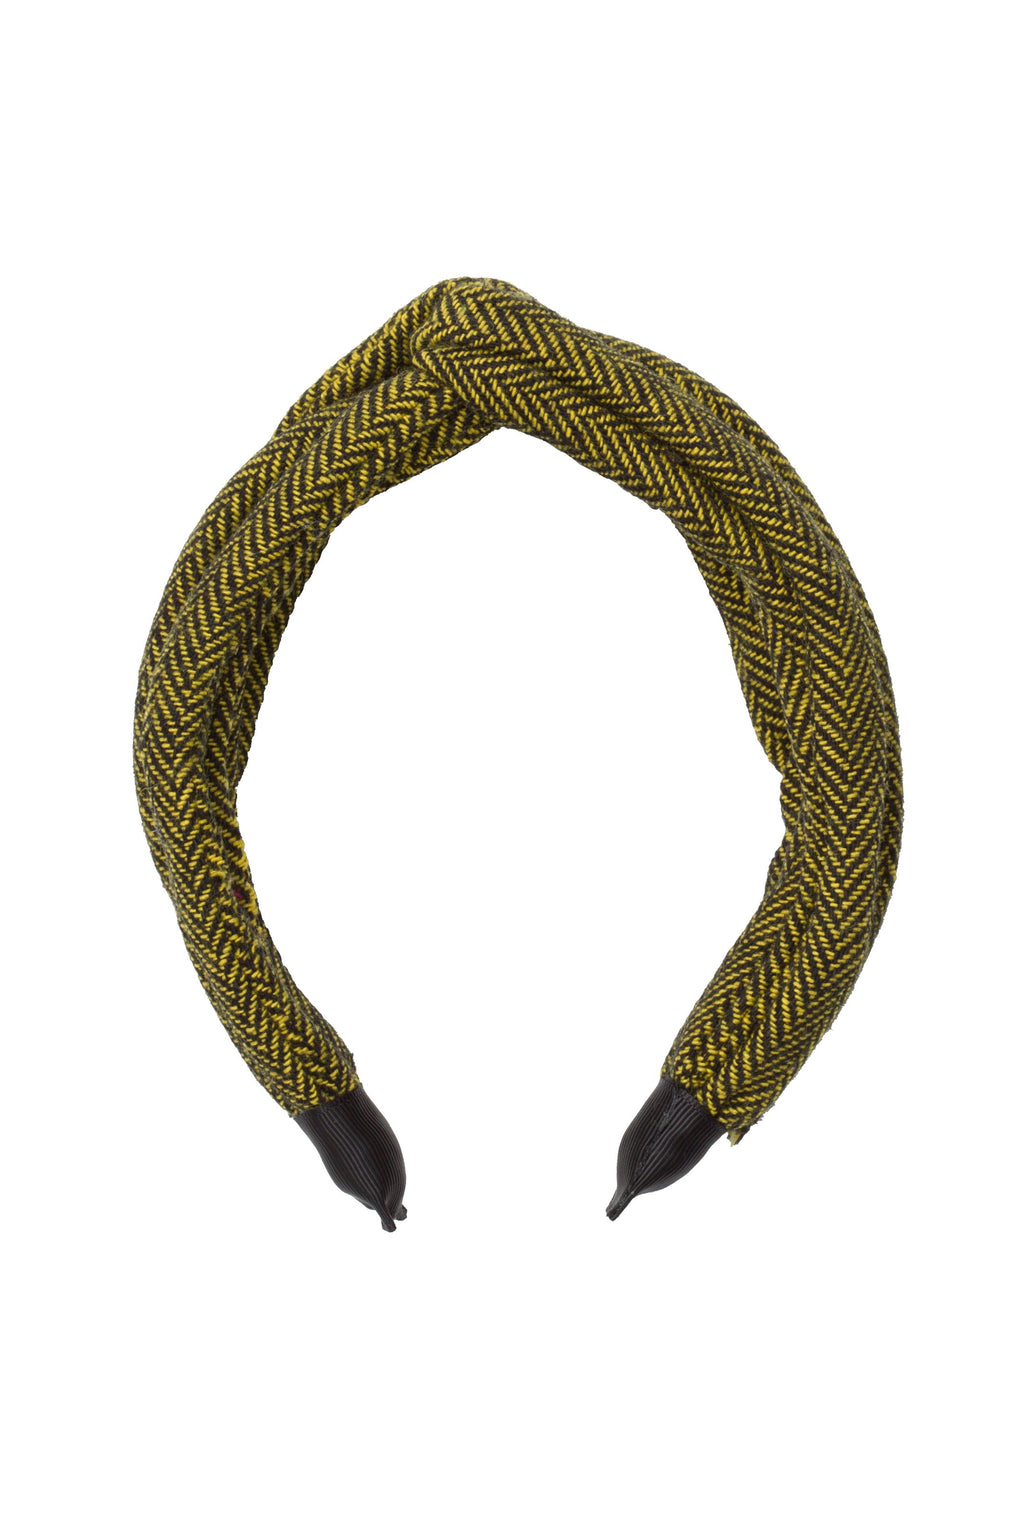 Tubular Herringbone Headband - Yellow - PROJECT 6, modest fashion